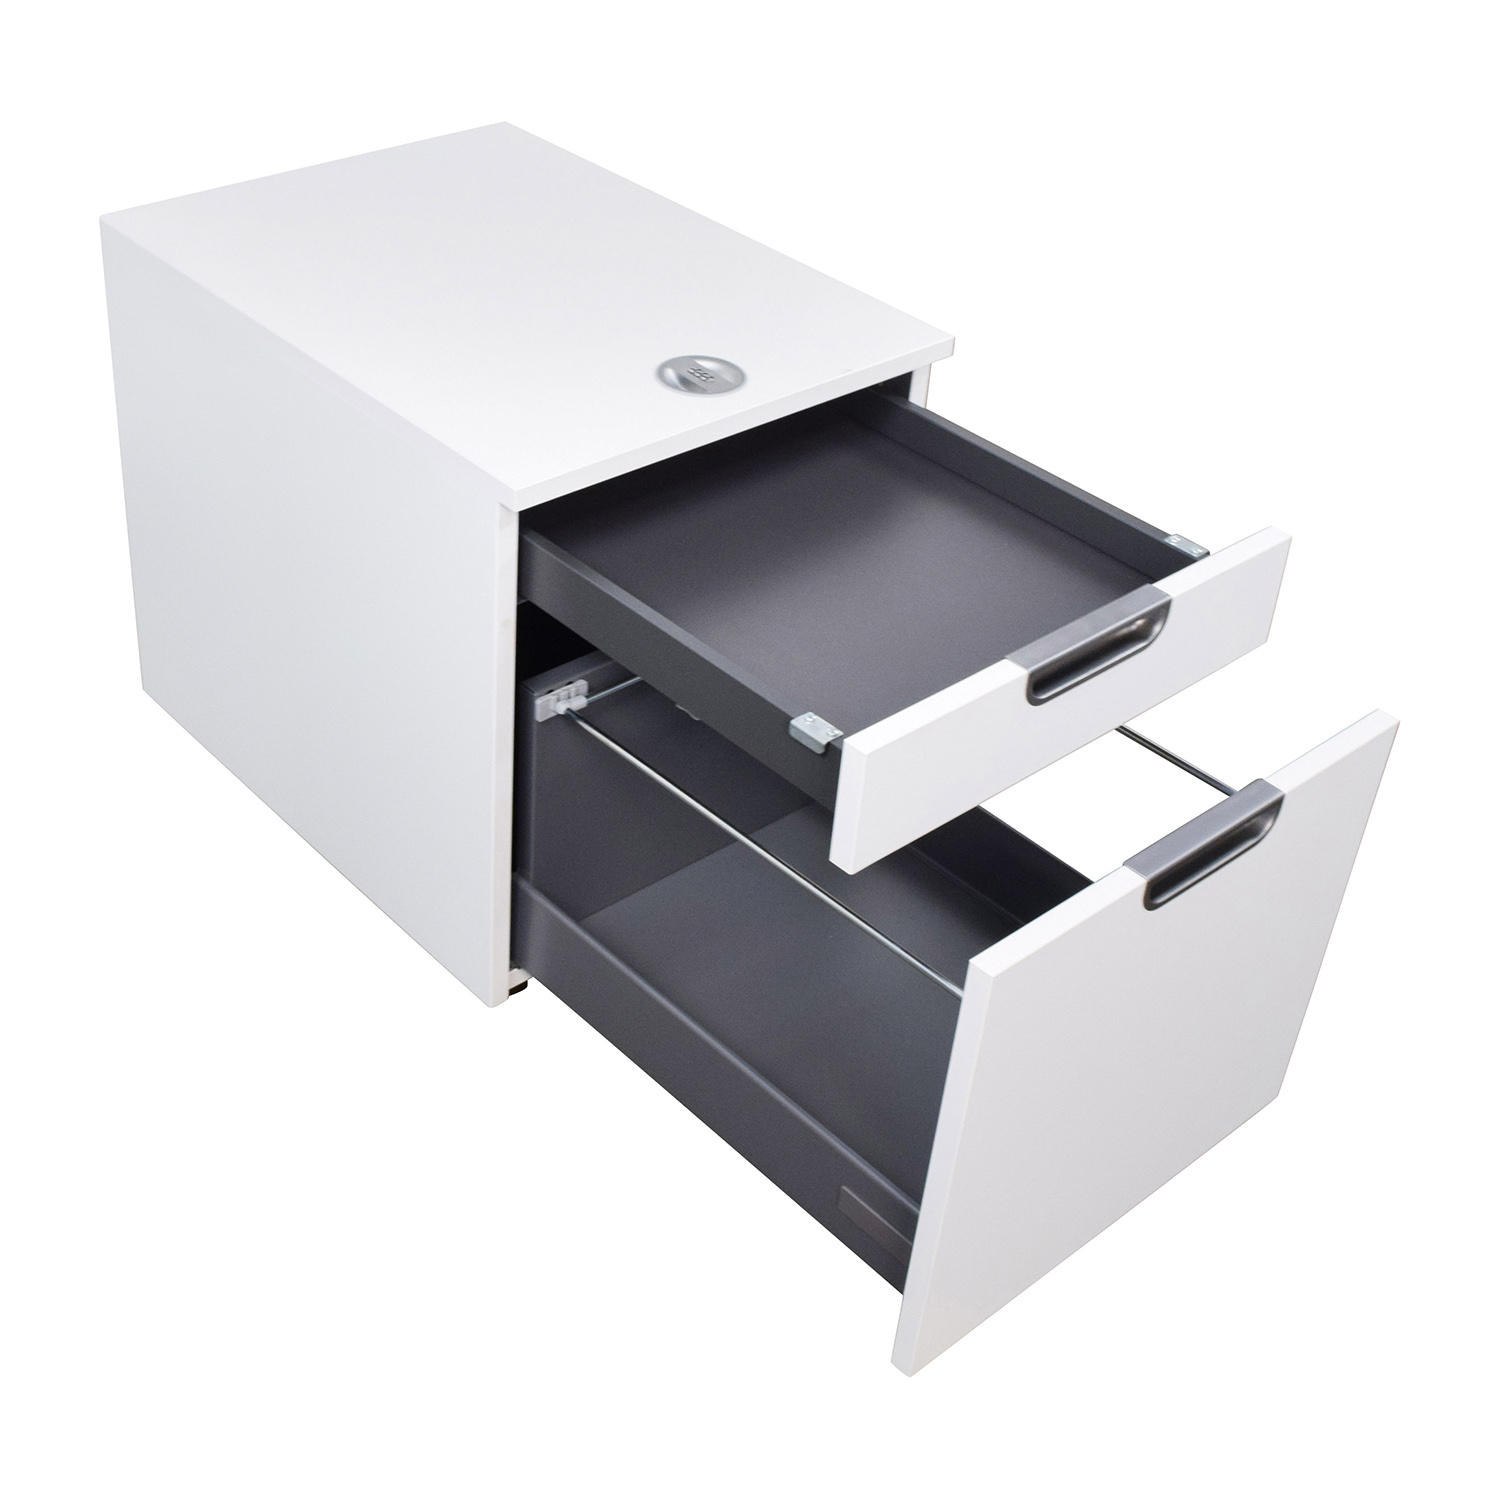 Good ... IKEA IKEA Galant White Combination Lock File Cabinet Tables ...